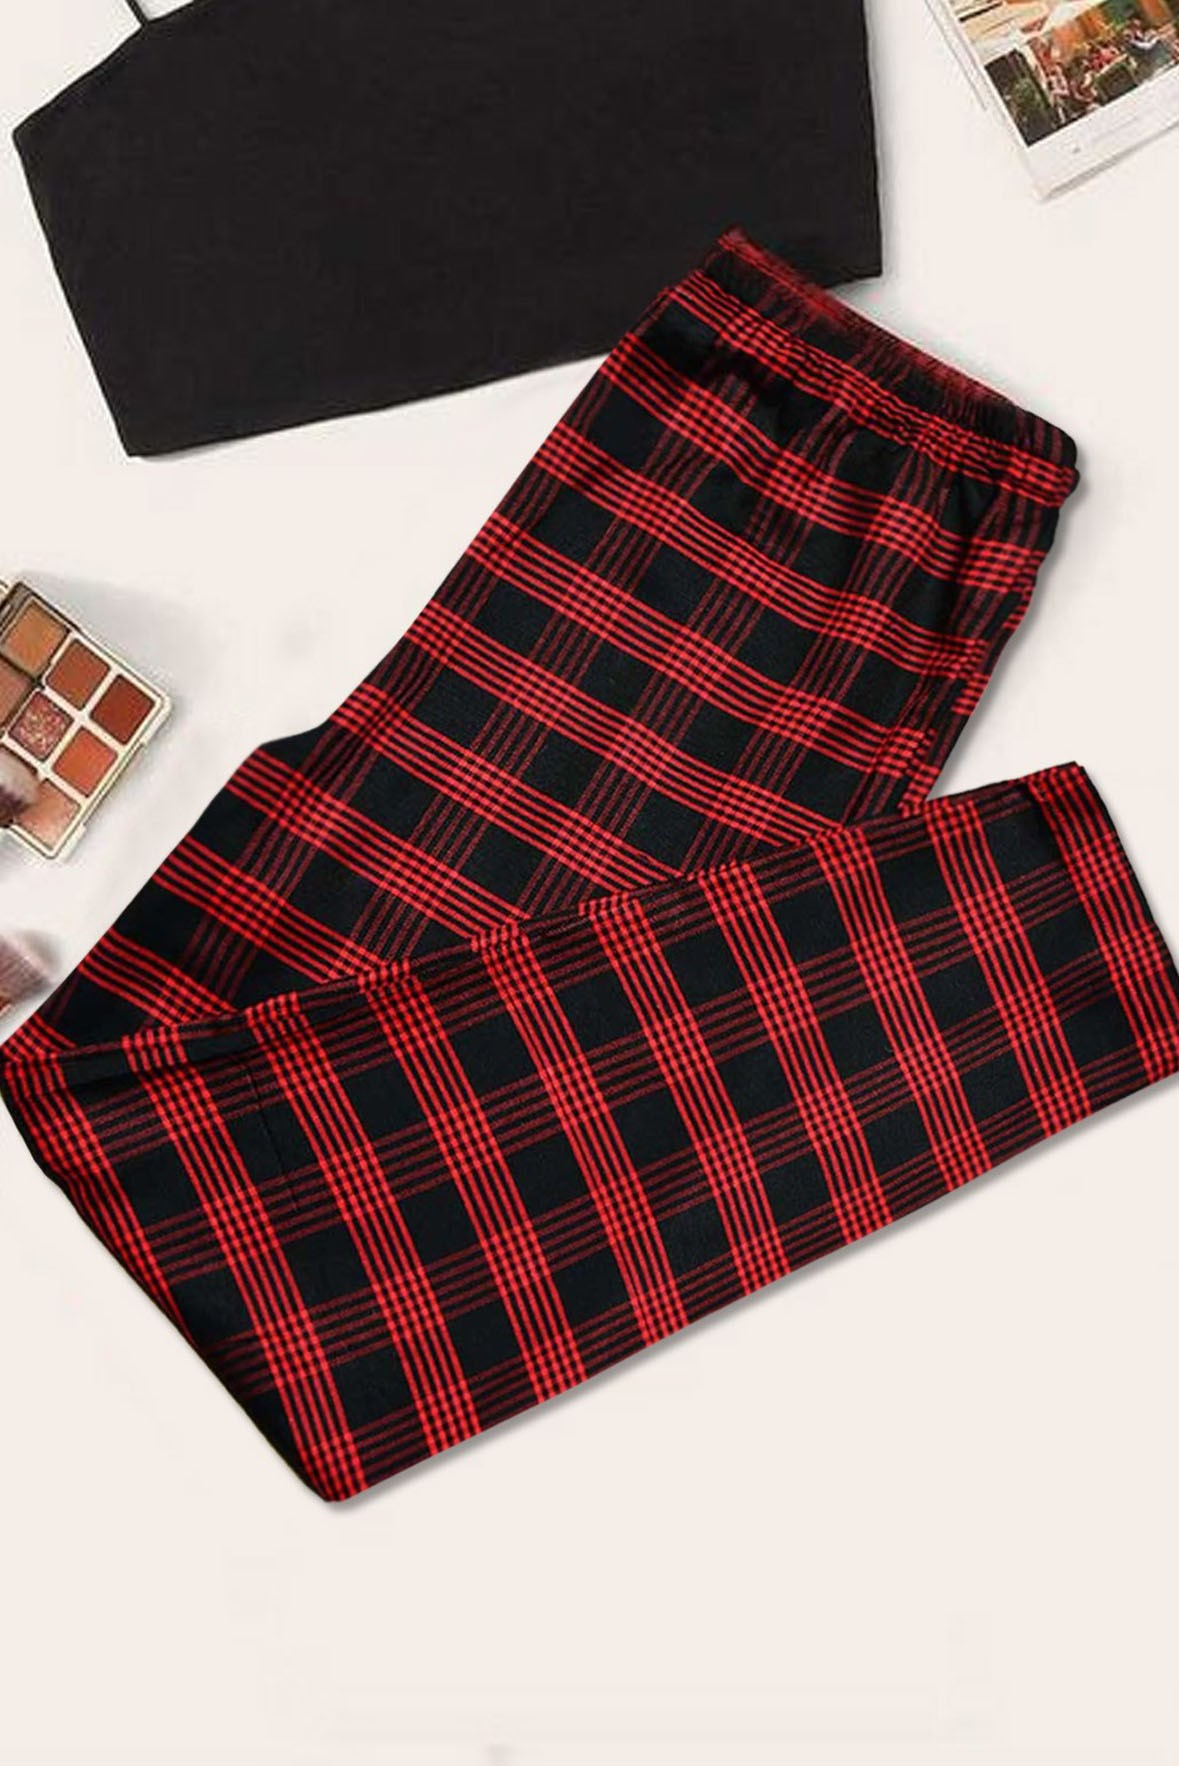 Carefree days trouser